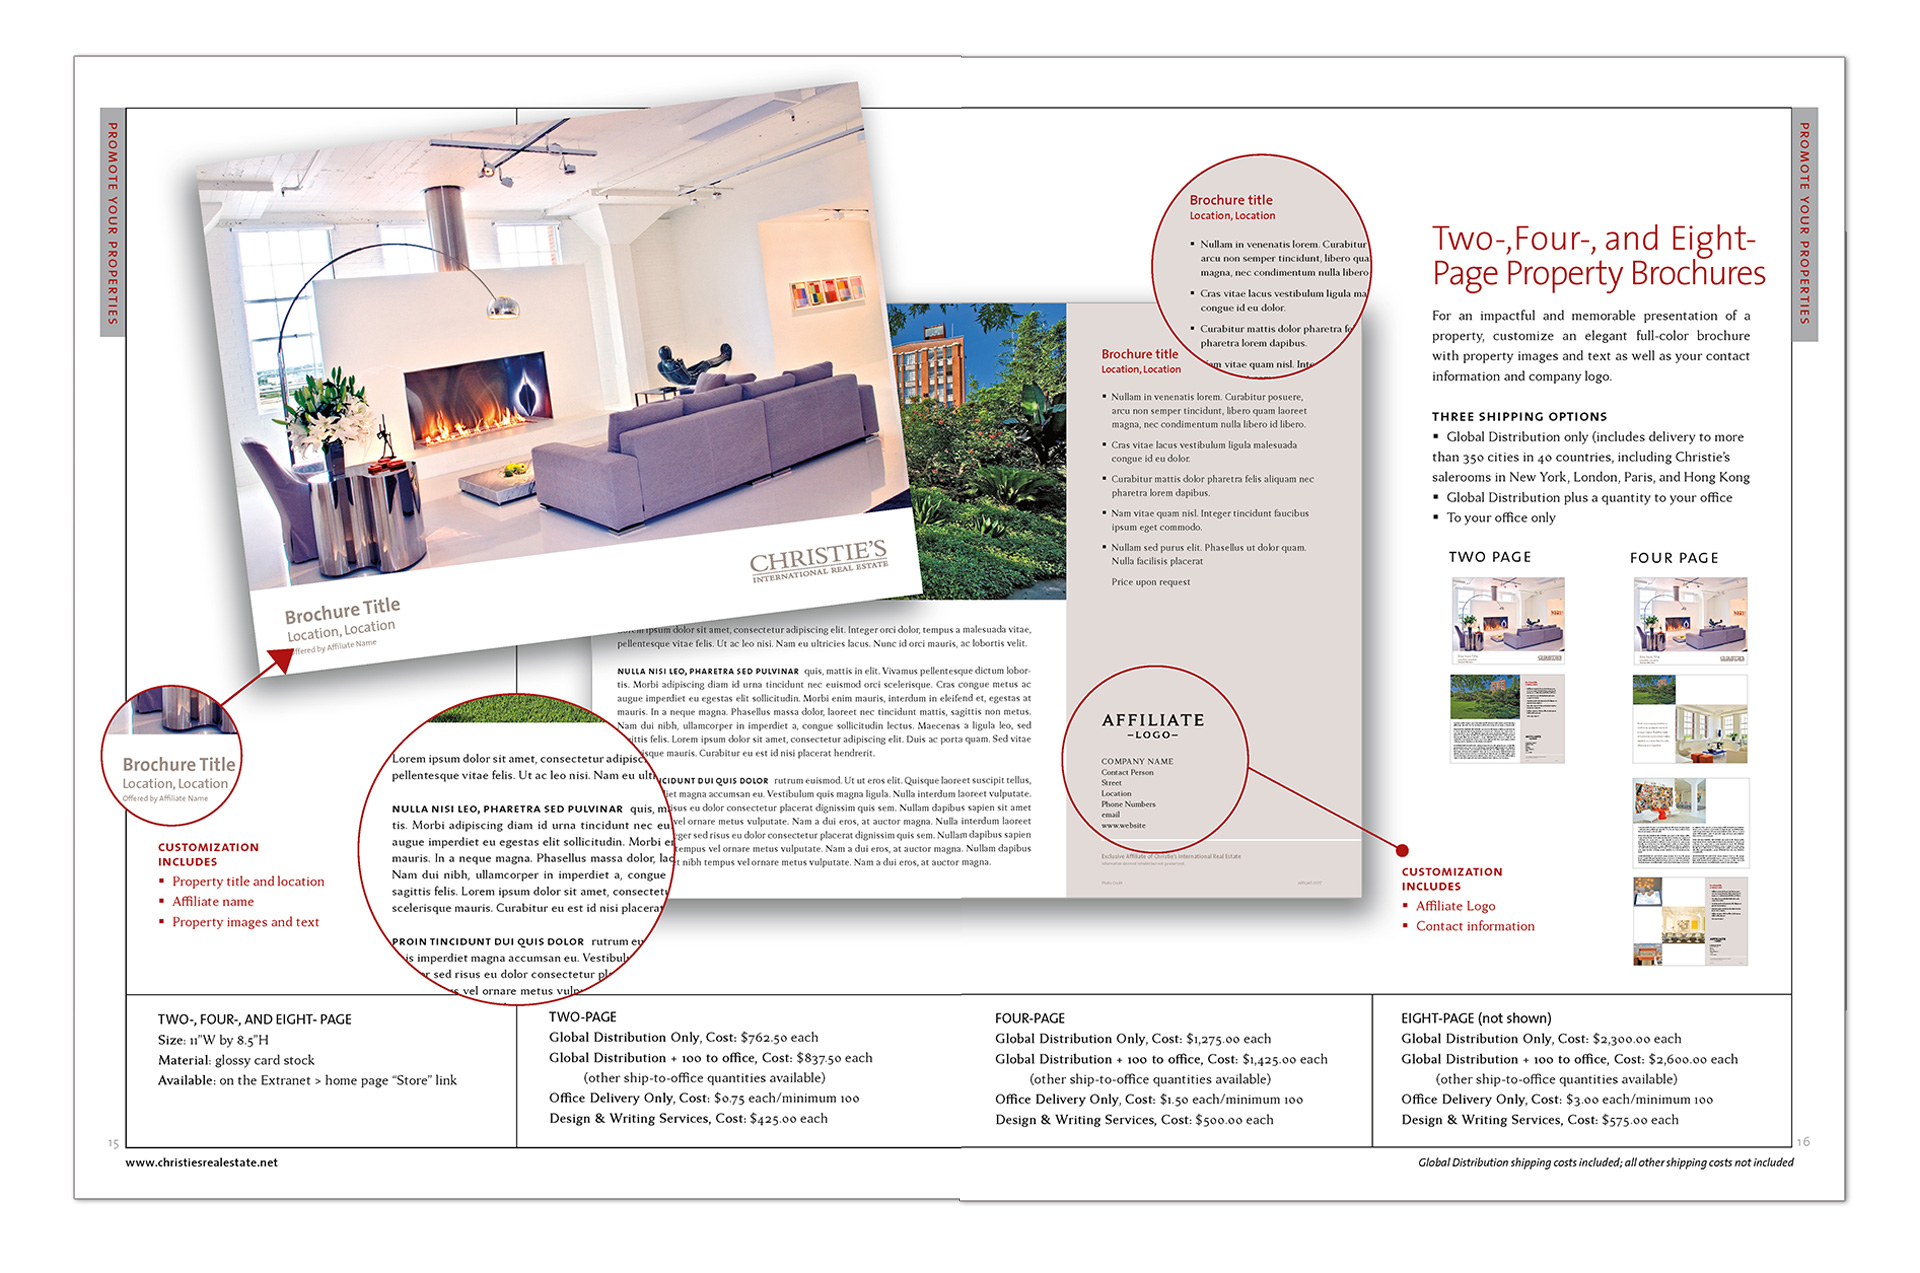 Christies-International-Real-Estate-Branding-Guide-Spread